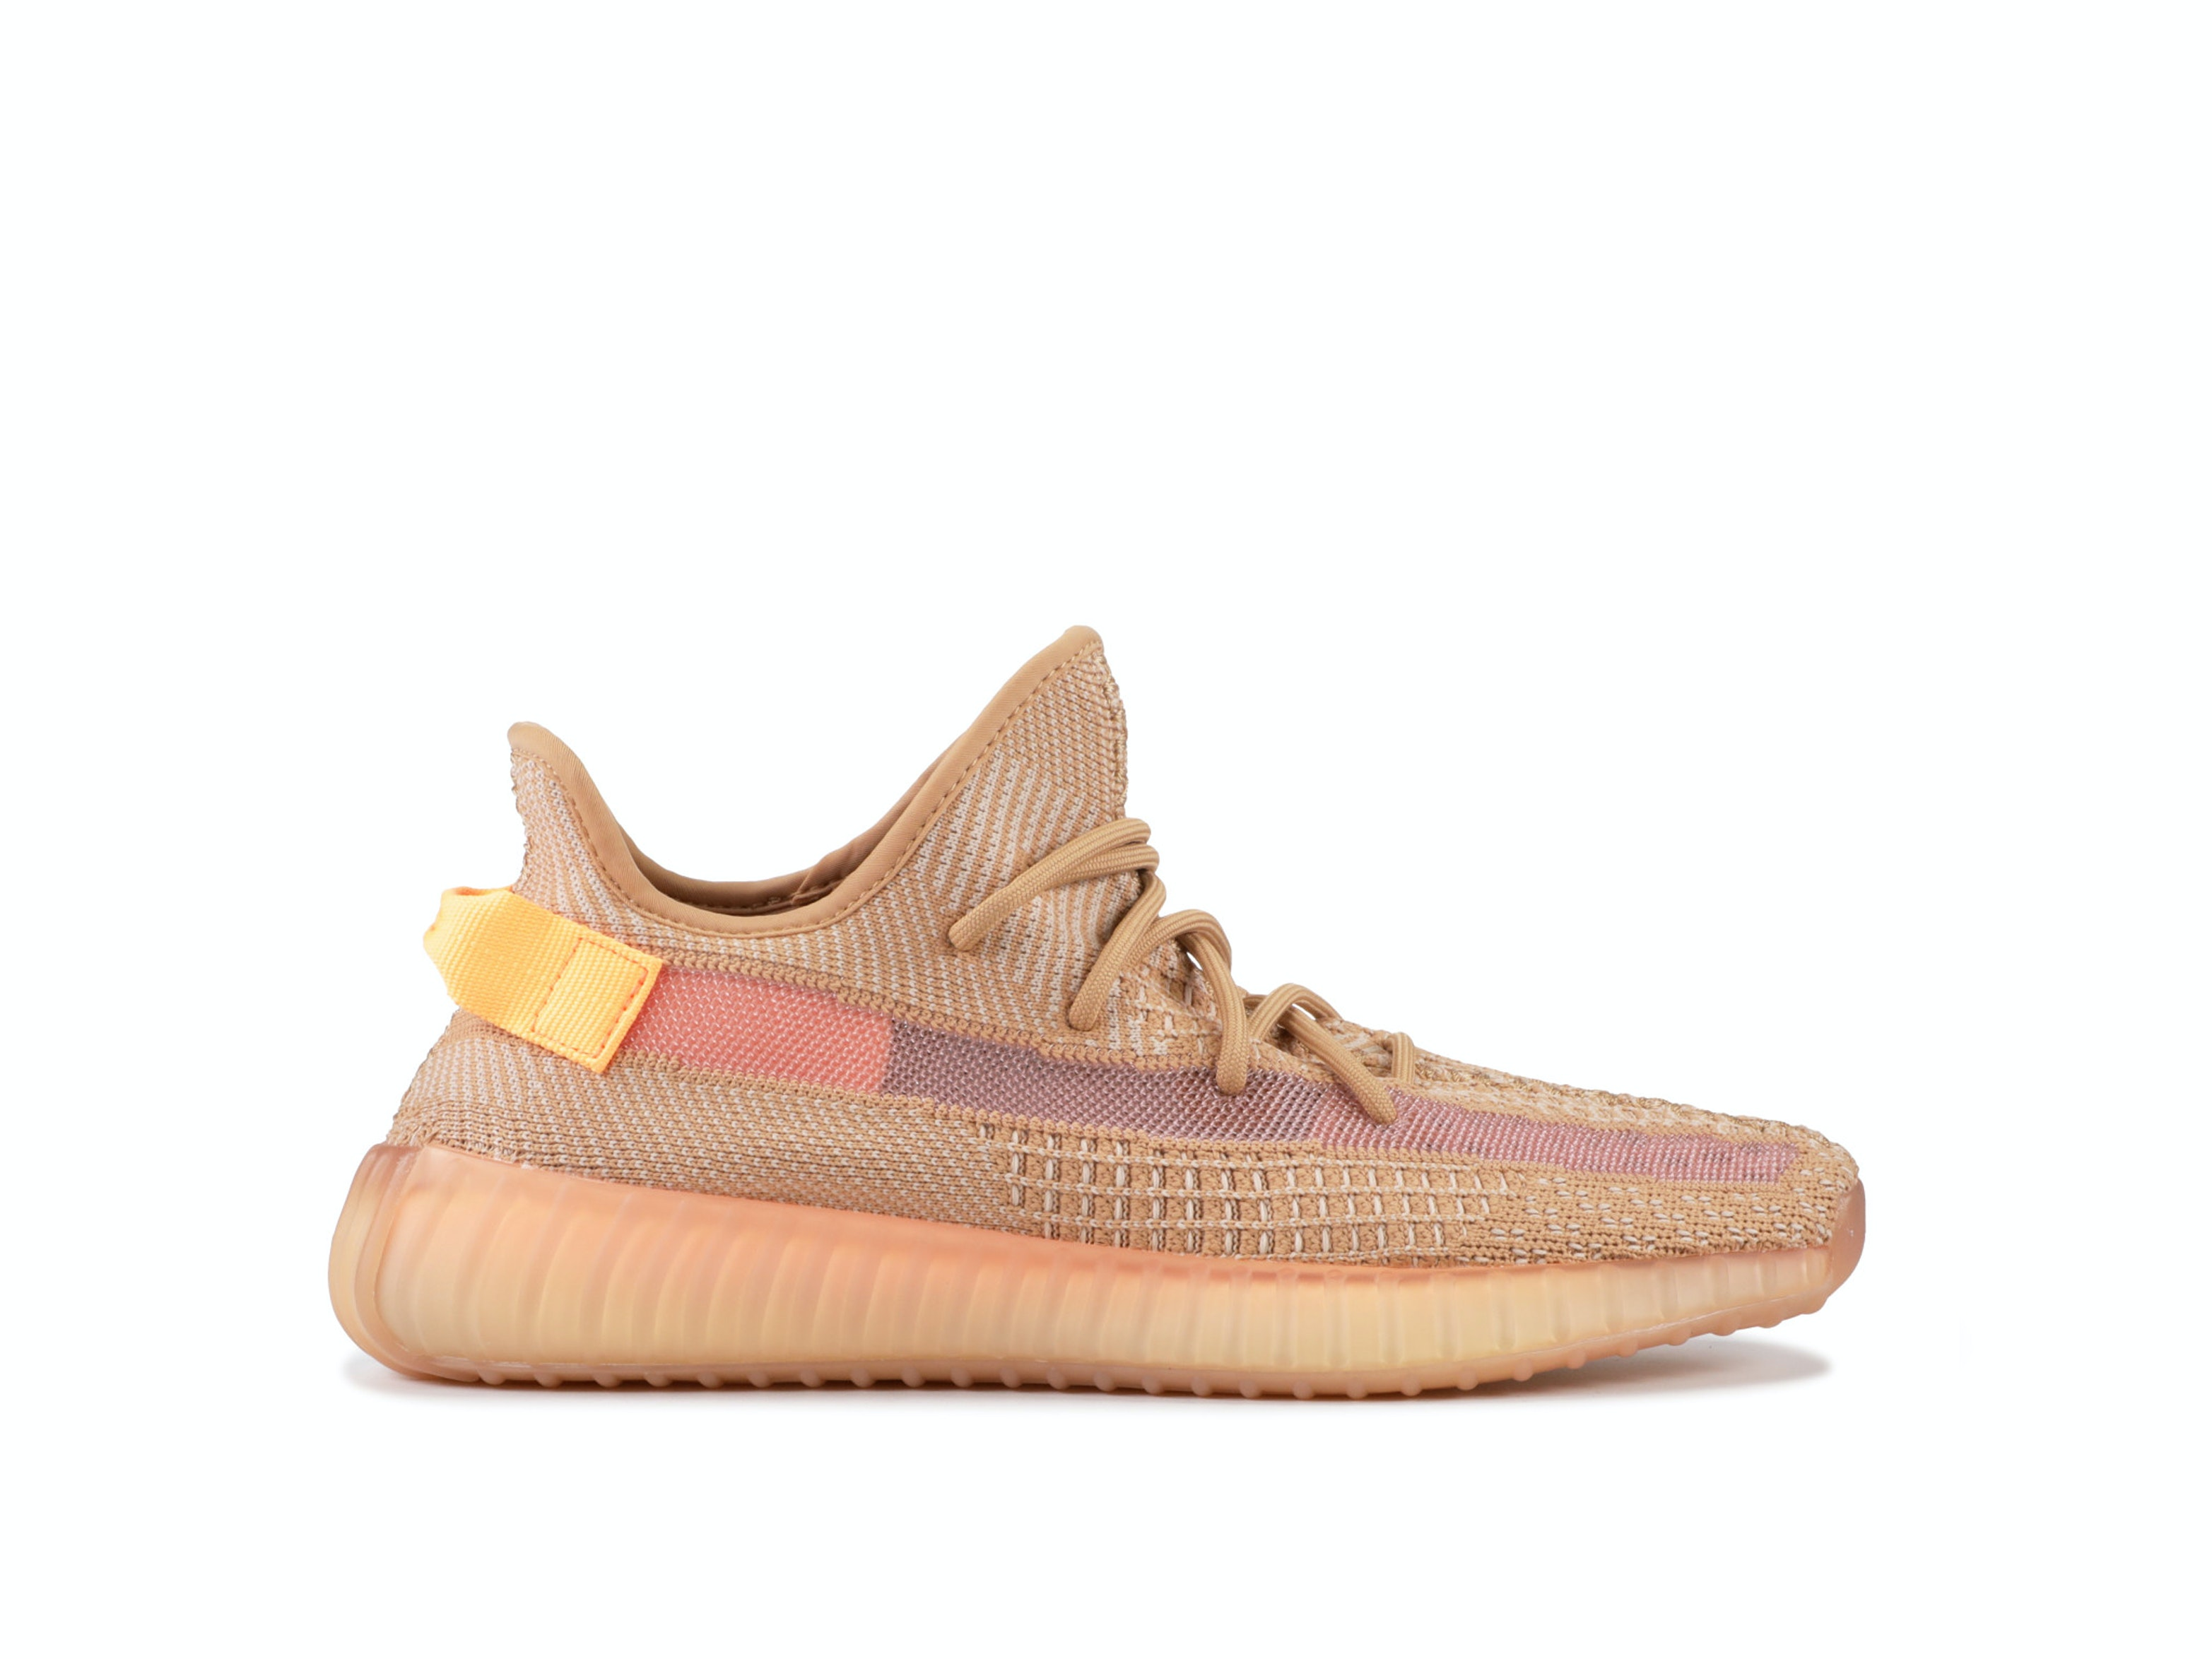 bbcfc9088 Yeezy Boost 350 V2 Clay. 100% AuthenticAvg ...